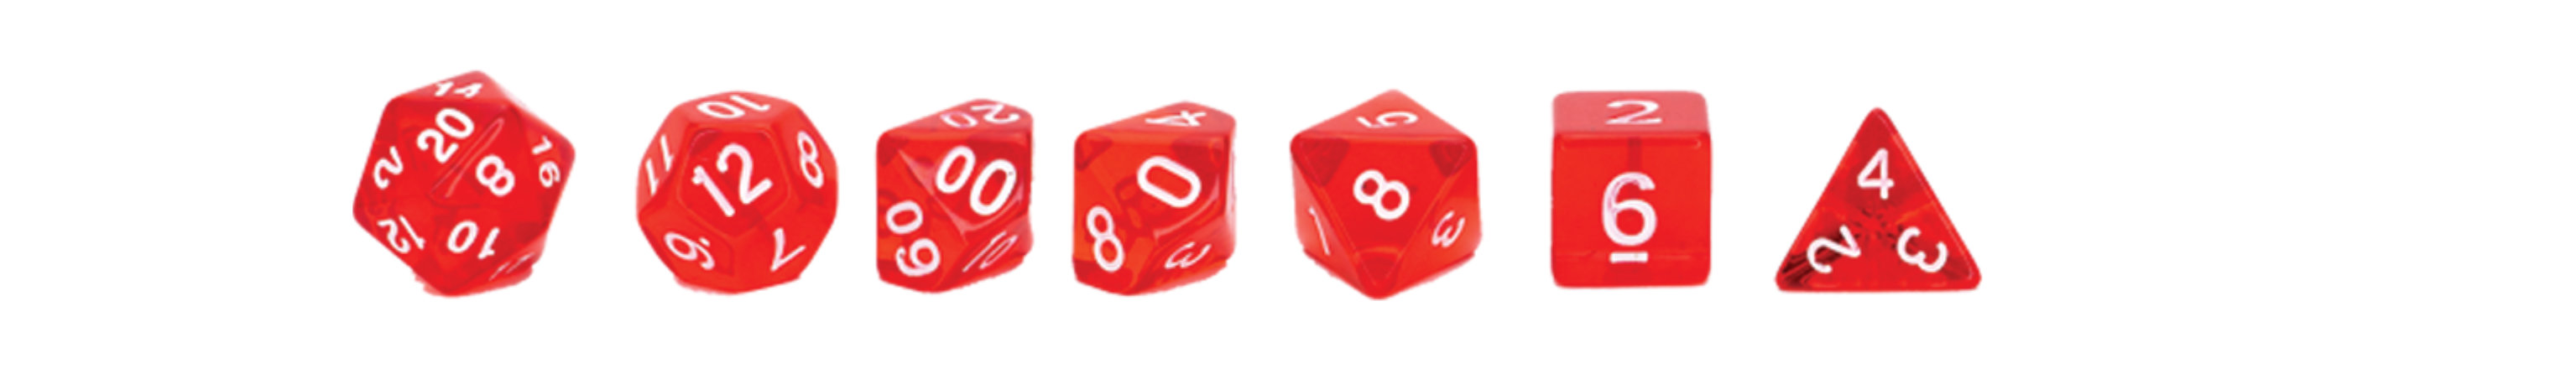 A lineup of red dice from a D4 to D20.